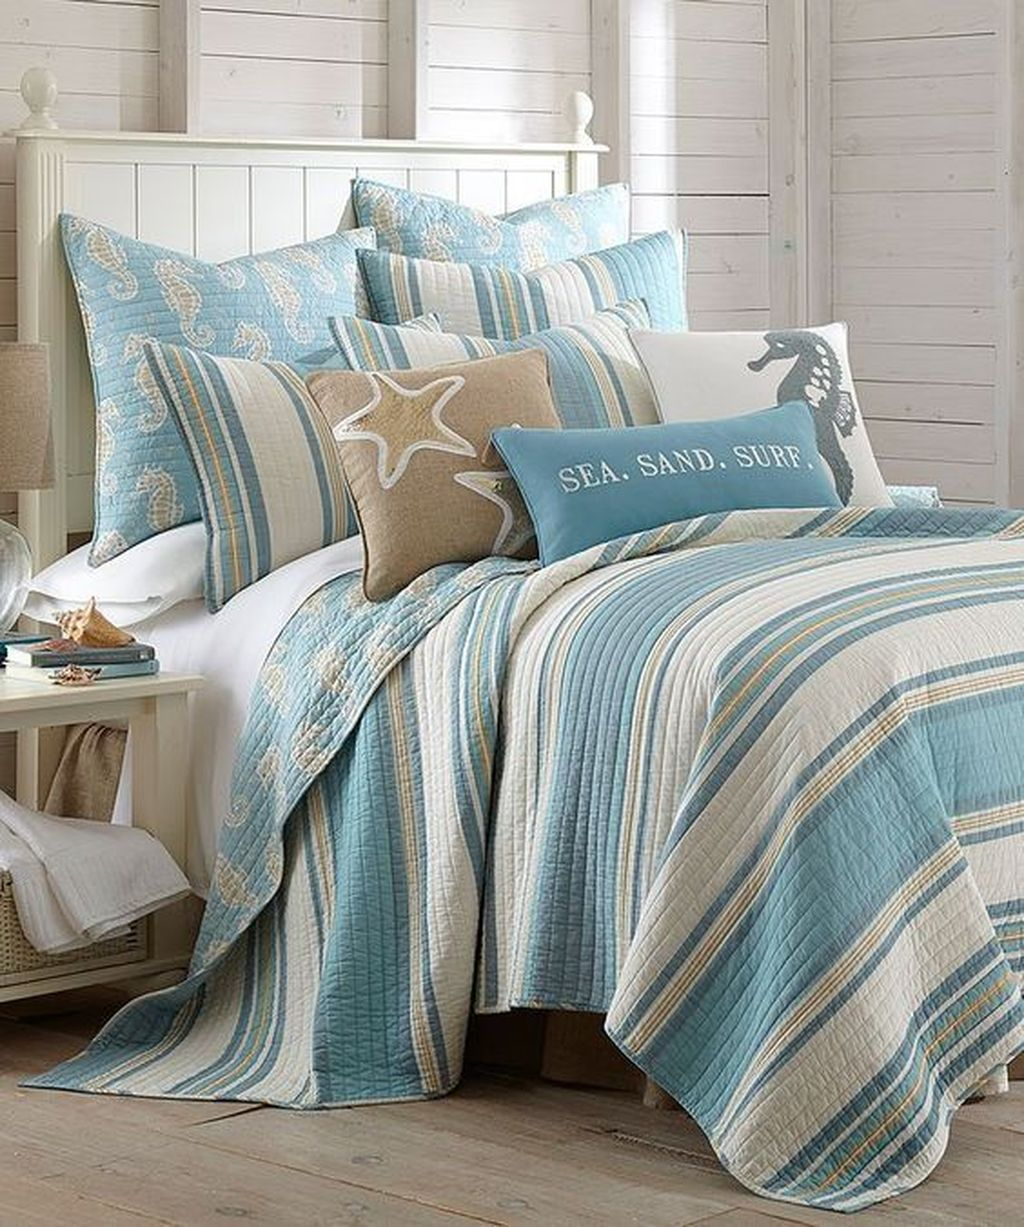 Fantastic Beach Theme Bedroom Ideas Make You Feel Relax 02